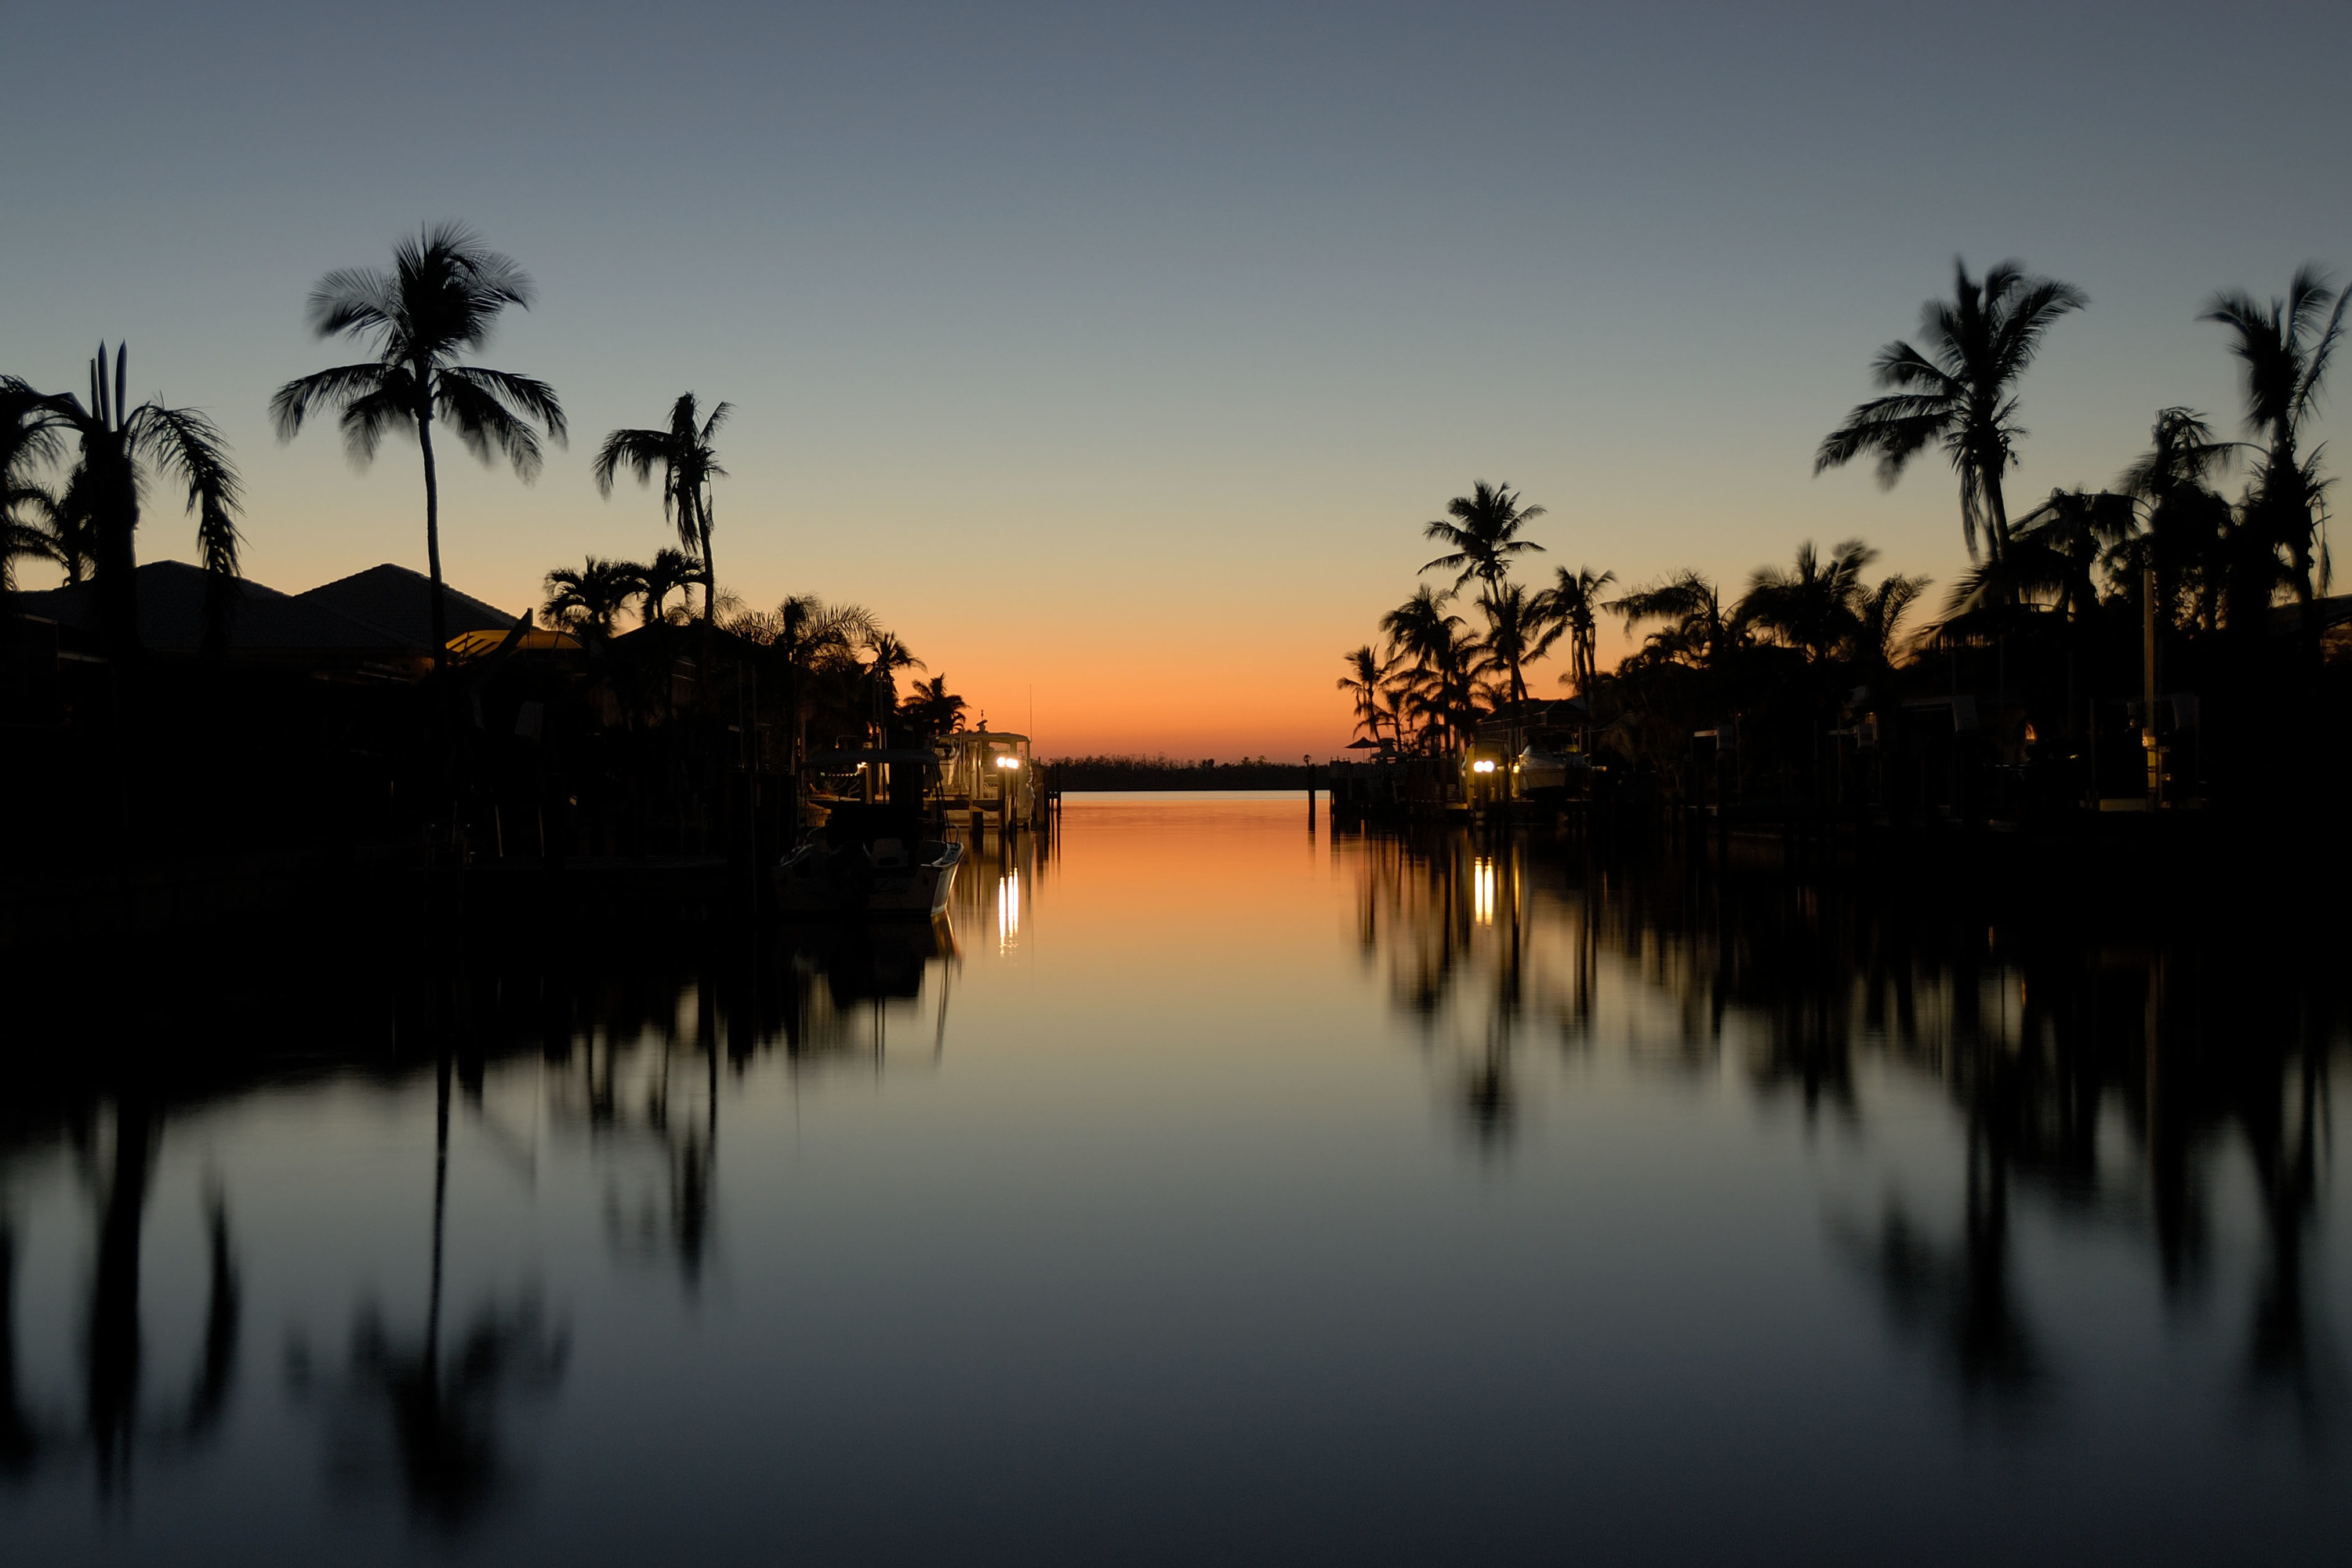 a sunset over the still water with palm trees in the shadows